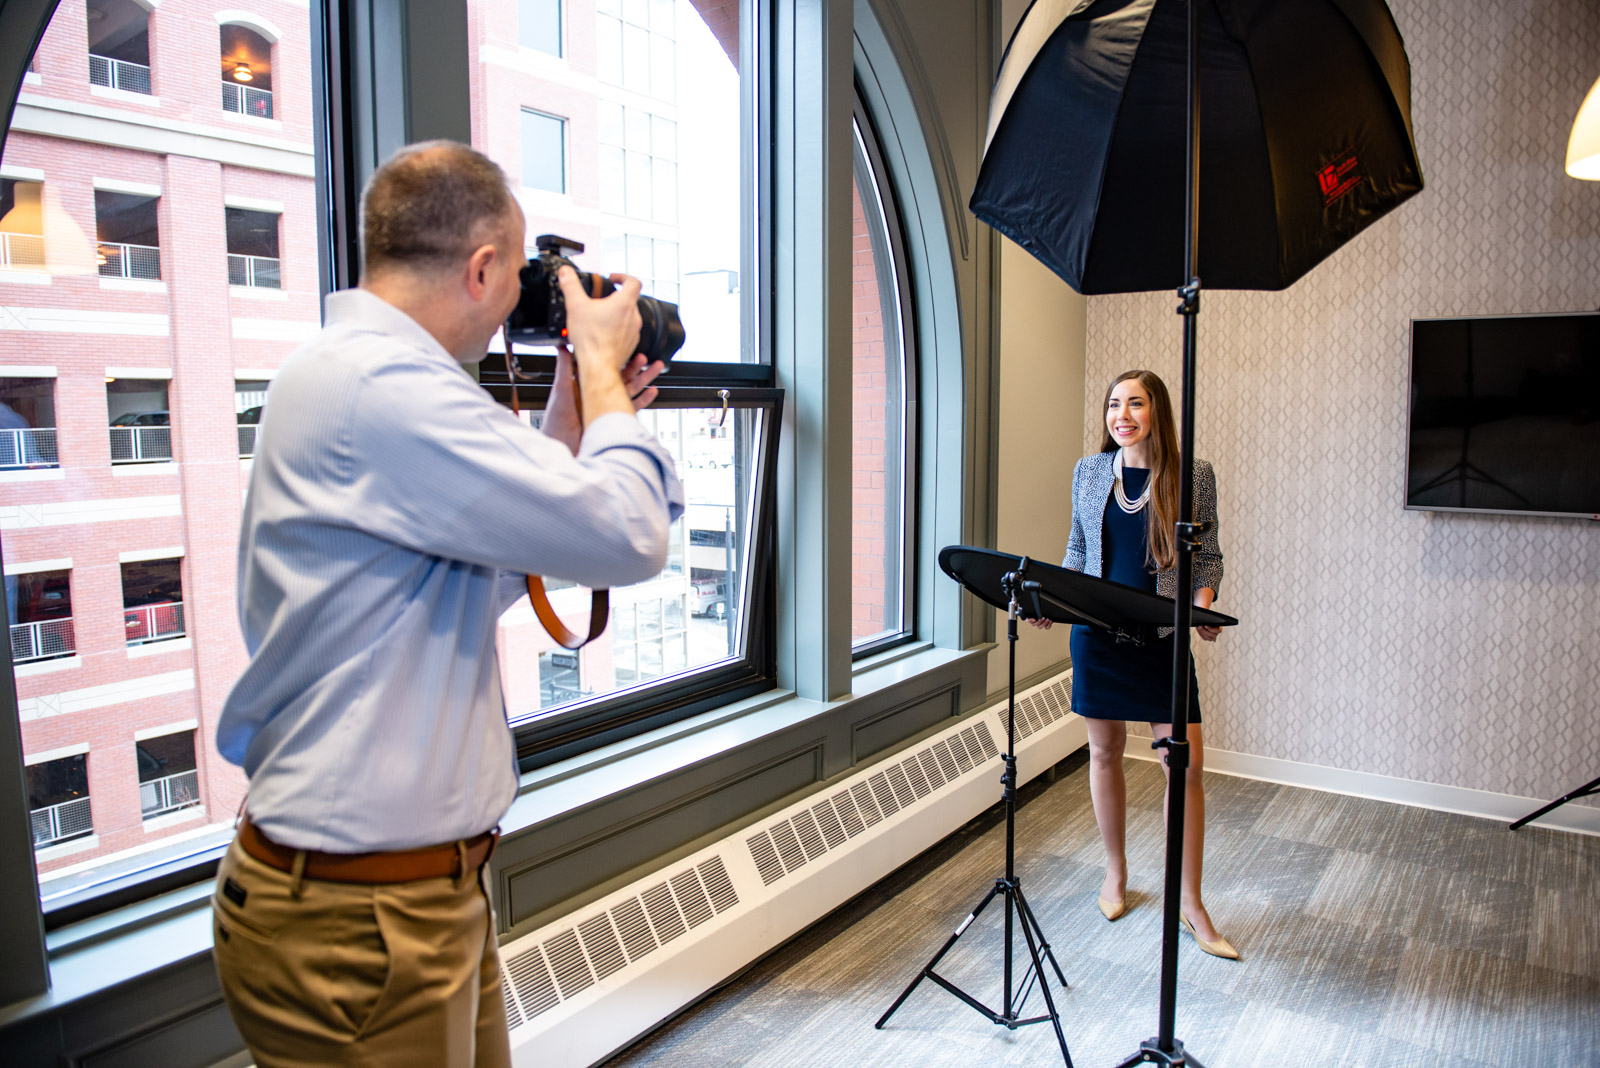 grand rapids headshot, grand rapids headshots, headshots grand rapids, business headshots grand rapids, grand rapids business headshots, grand rapids business photography